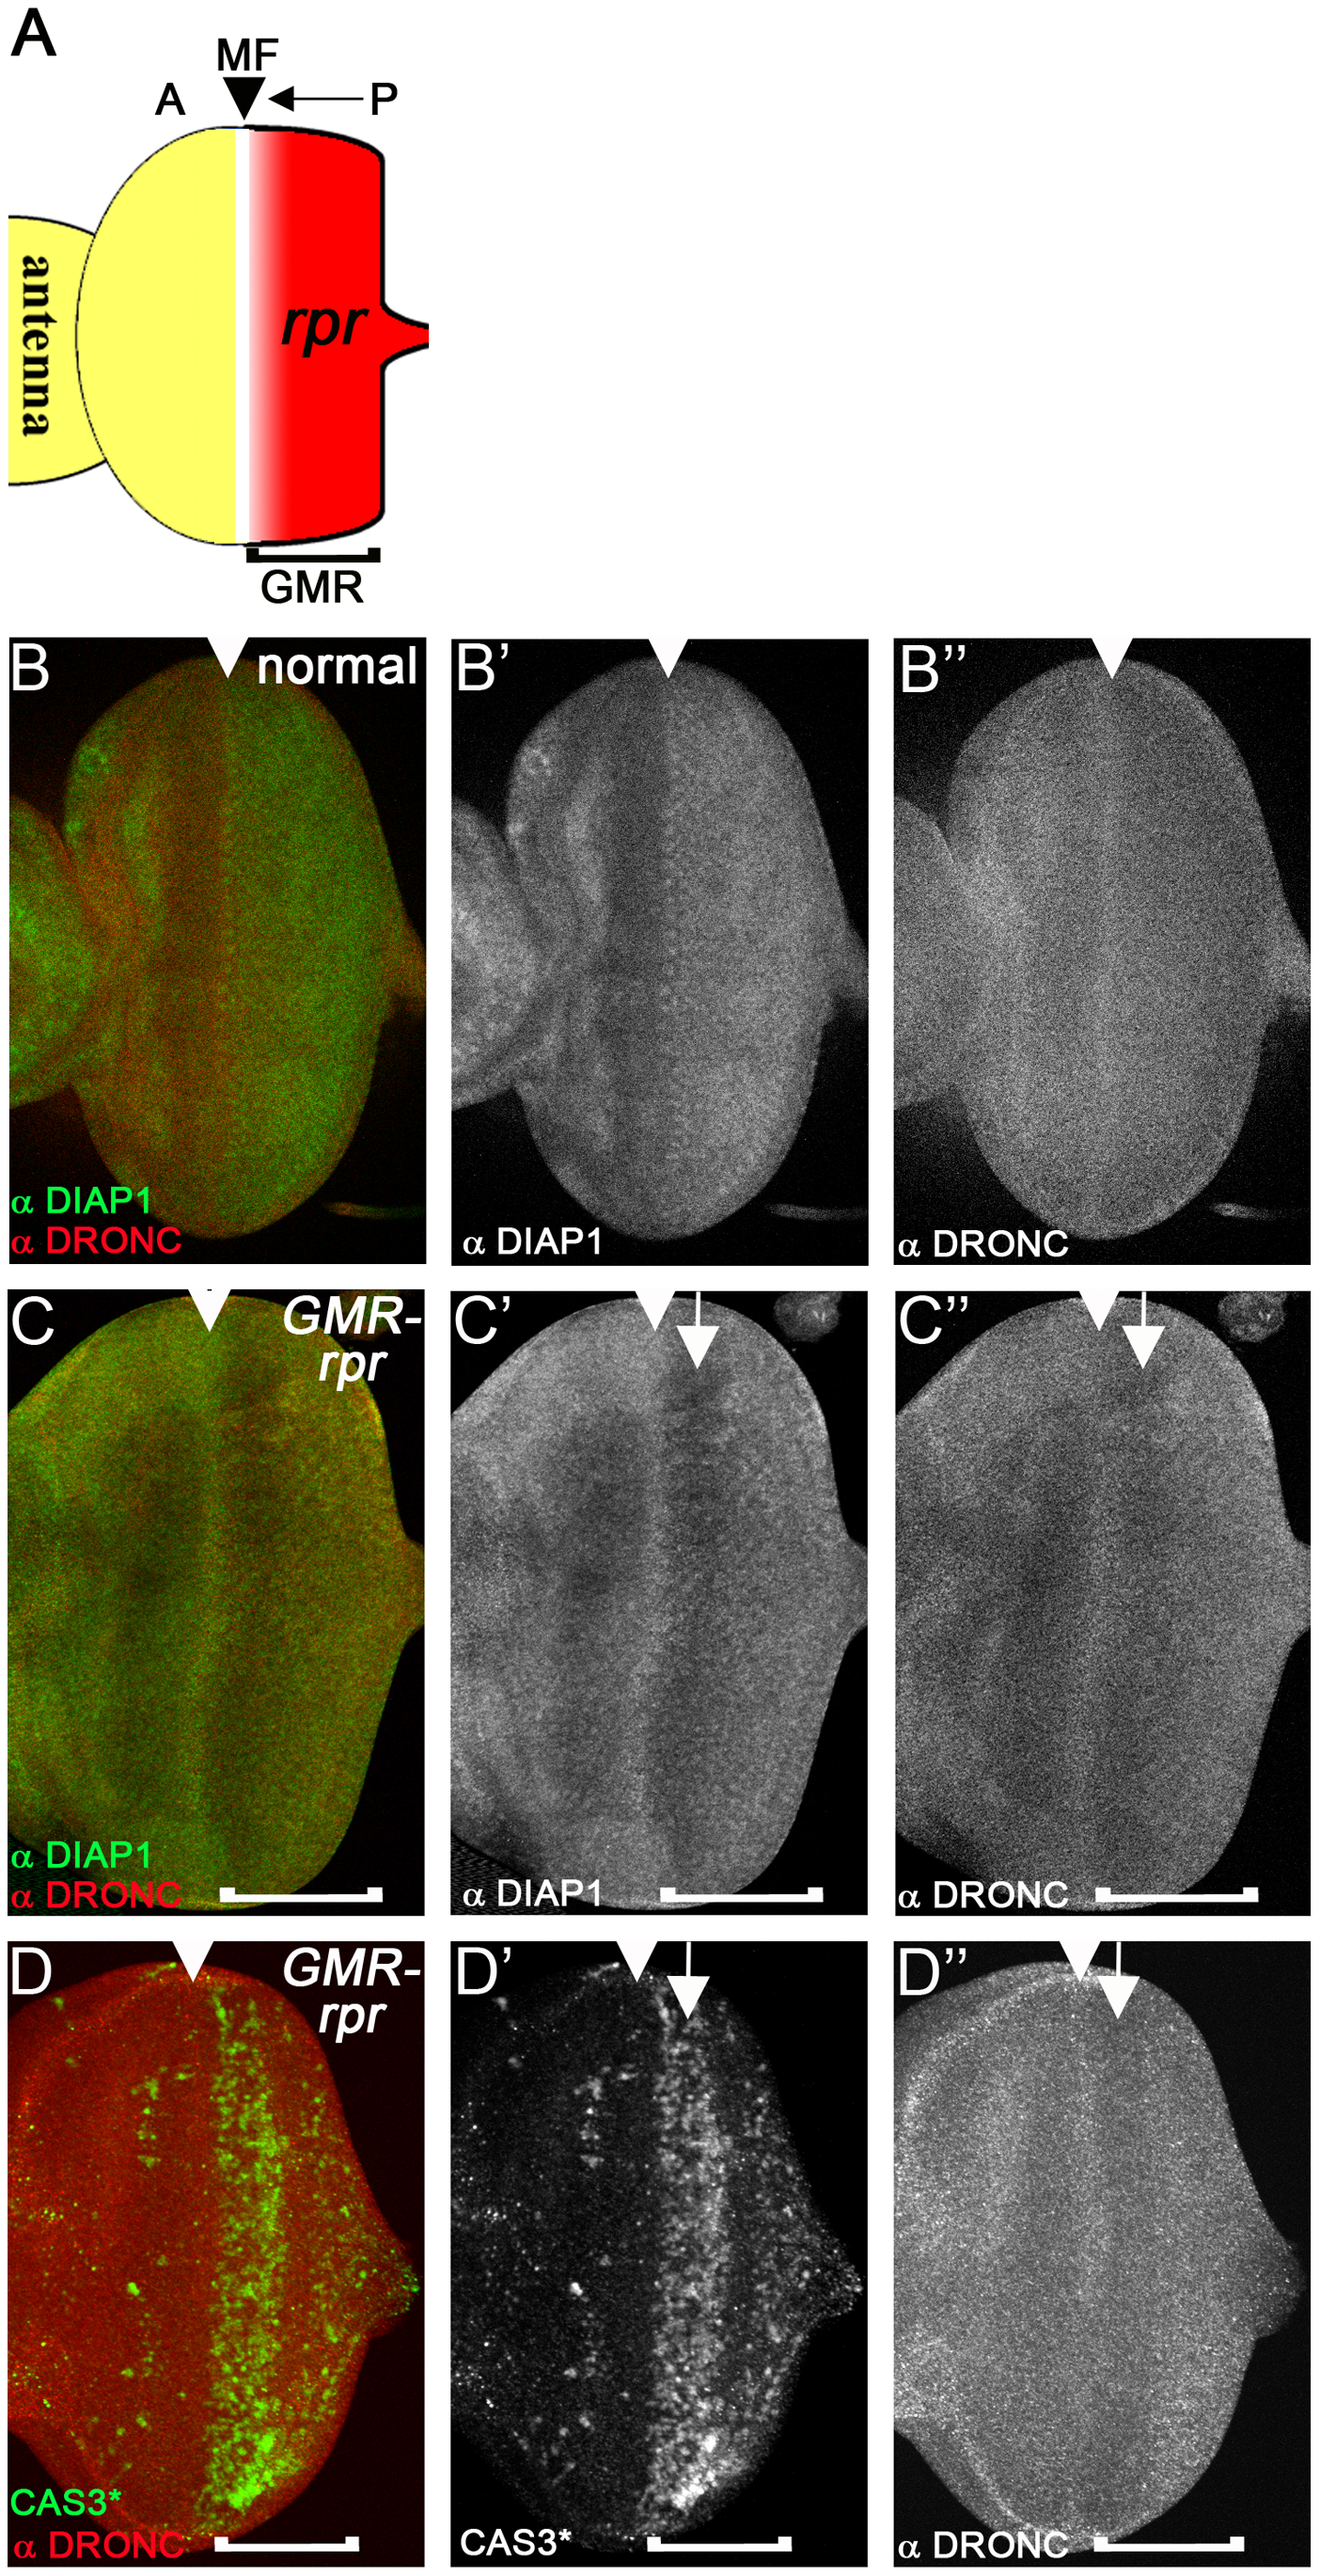 Loss of DIAP1 in <i>GMR-rpr</i> eye discs does not alter DRONC protein levels.